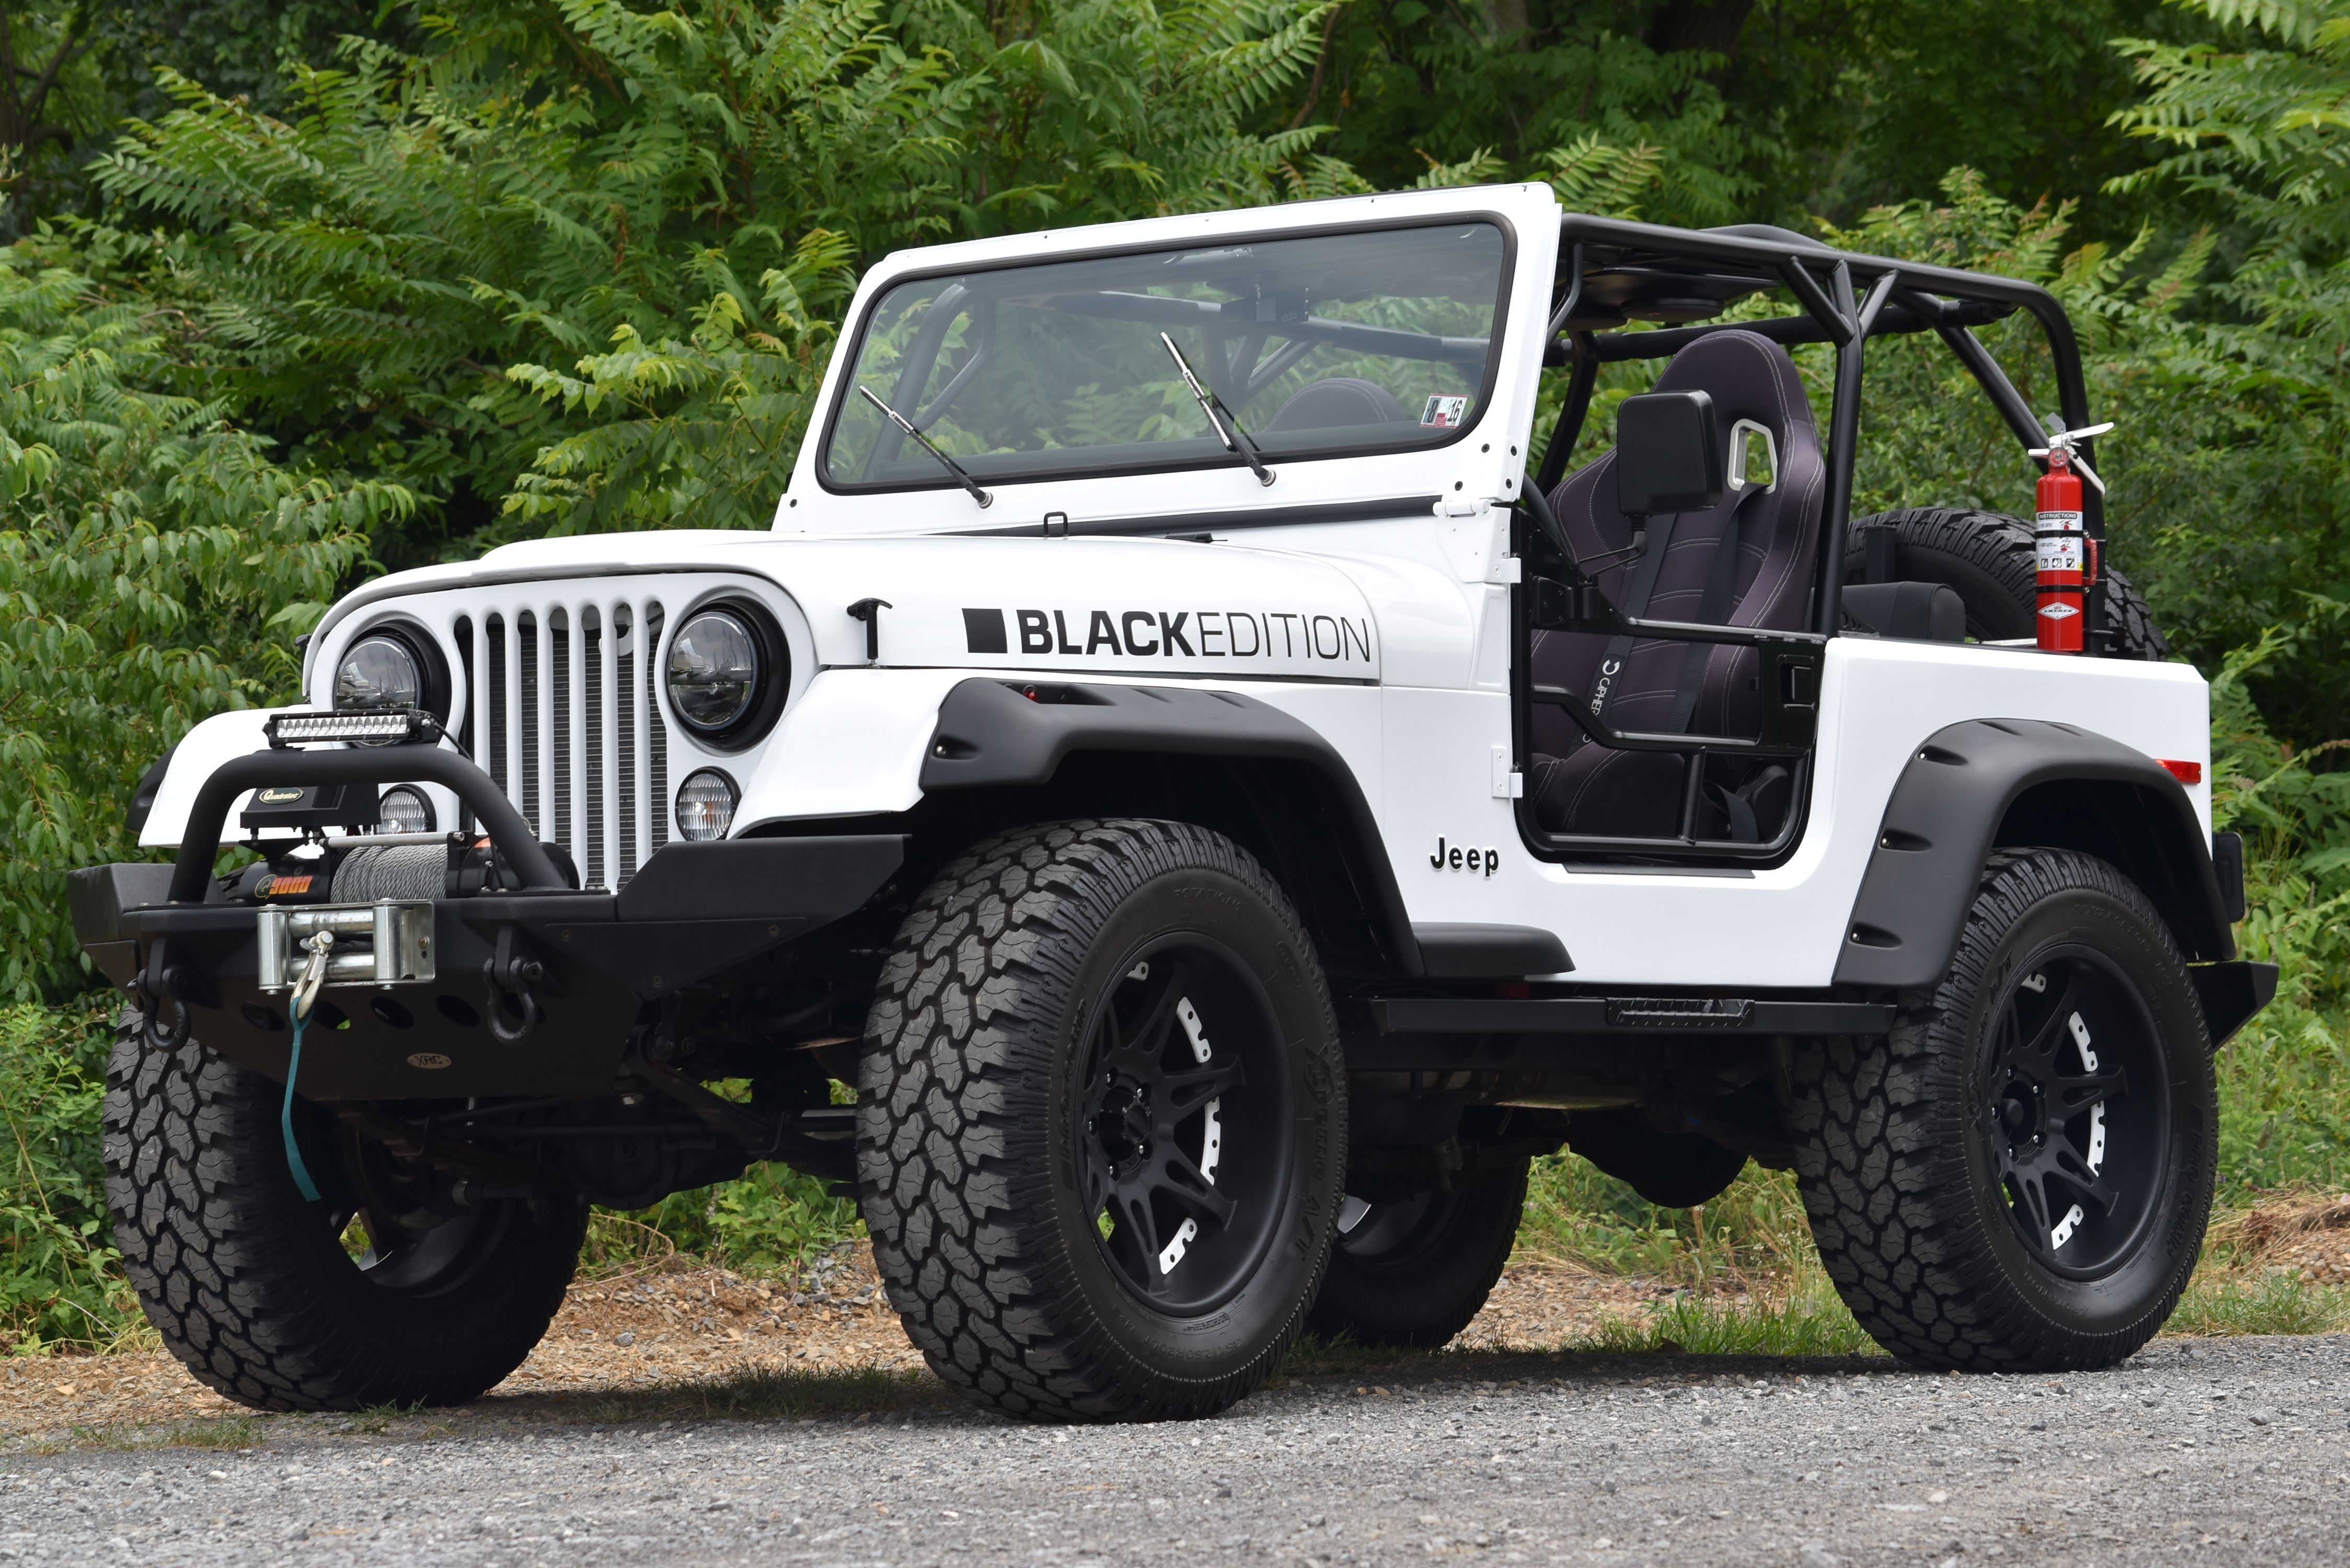 small resolution of this beautifully restored black edition 1980 jeep cj 7 has been a complete frame off build and features a 347 c i ford v8 motor fully custom roll cage